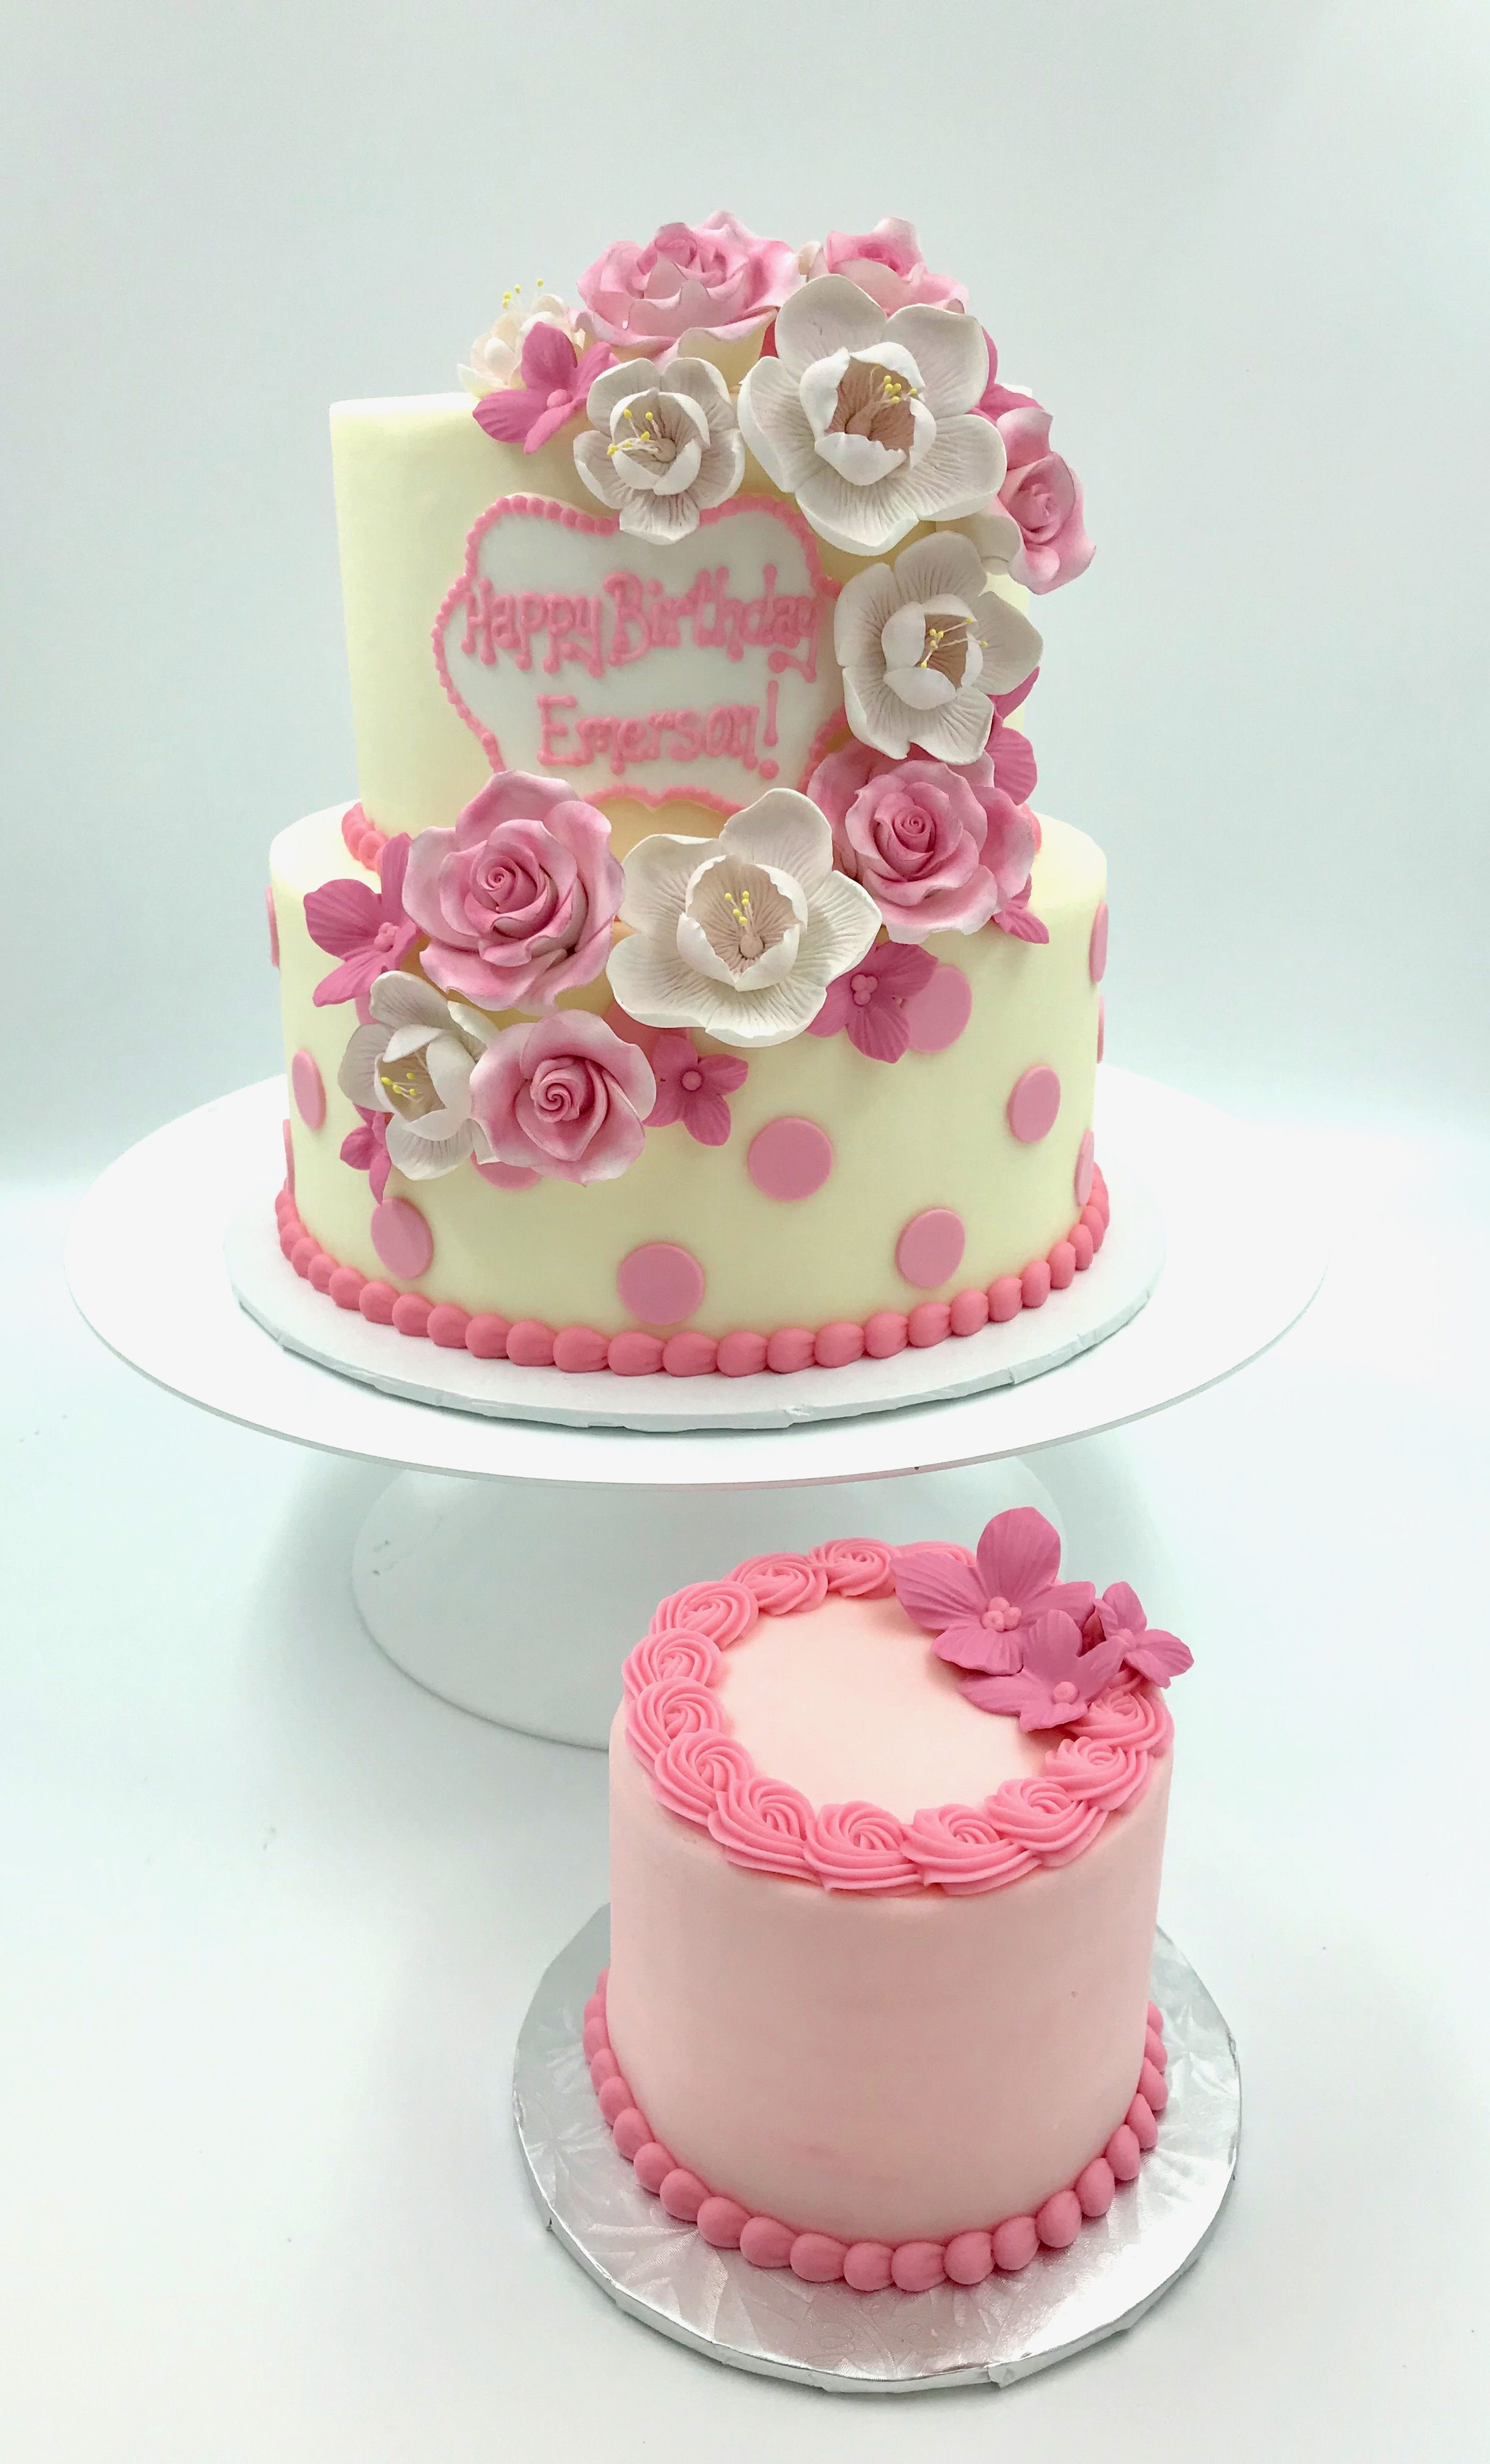 2 Tier Pink And White Floral Cake Perfect For Birthdays For Girls Of All Ages This Could Also B Birthday Cakes For Women Tiered Cakes Birthday Cakes For Women